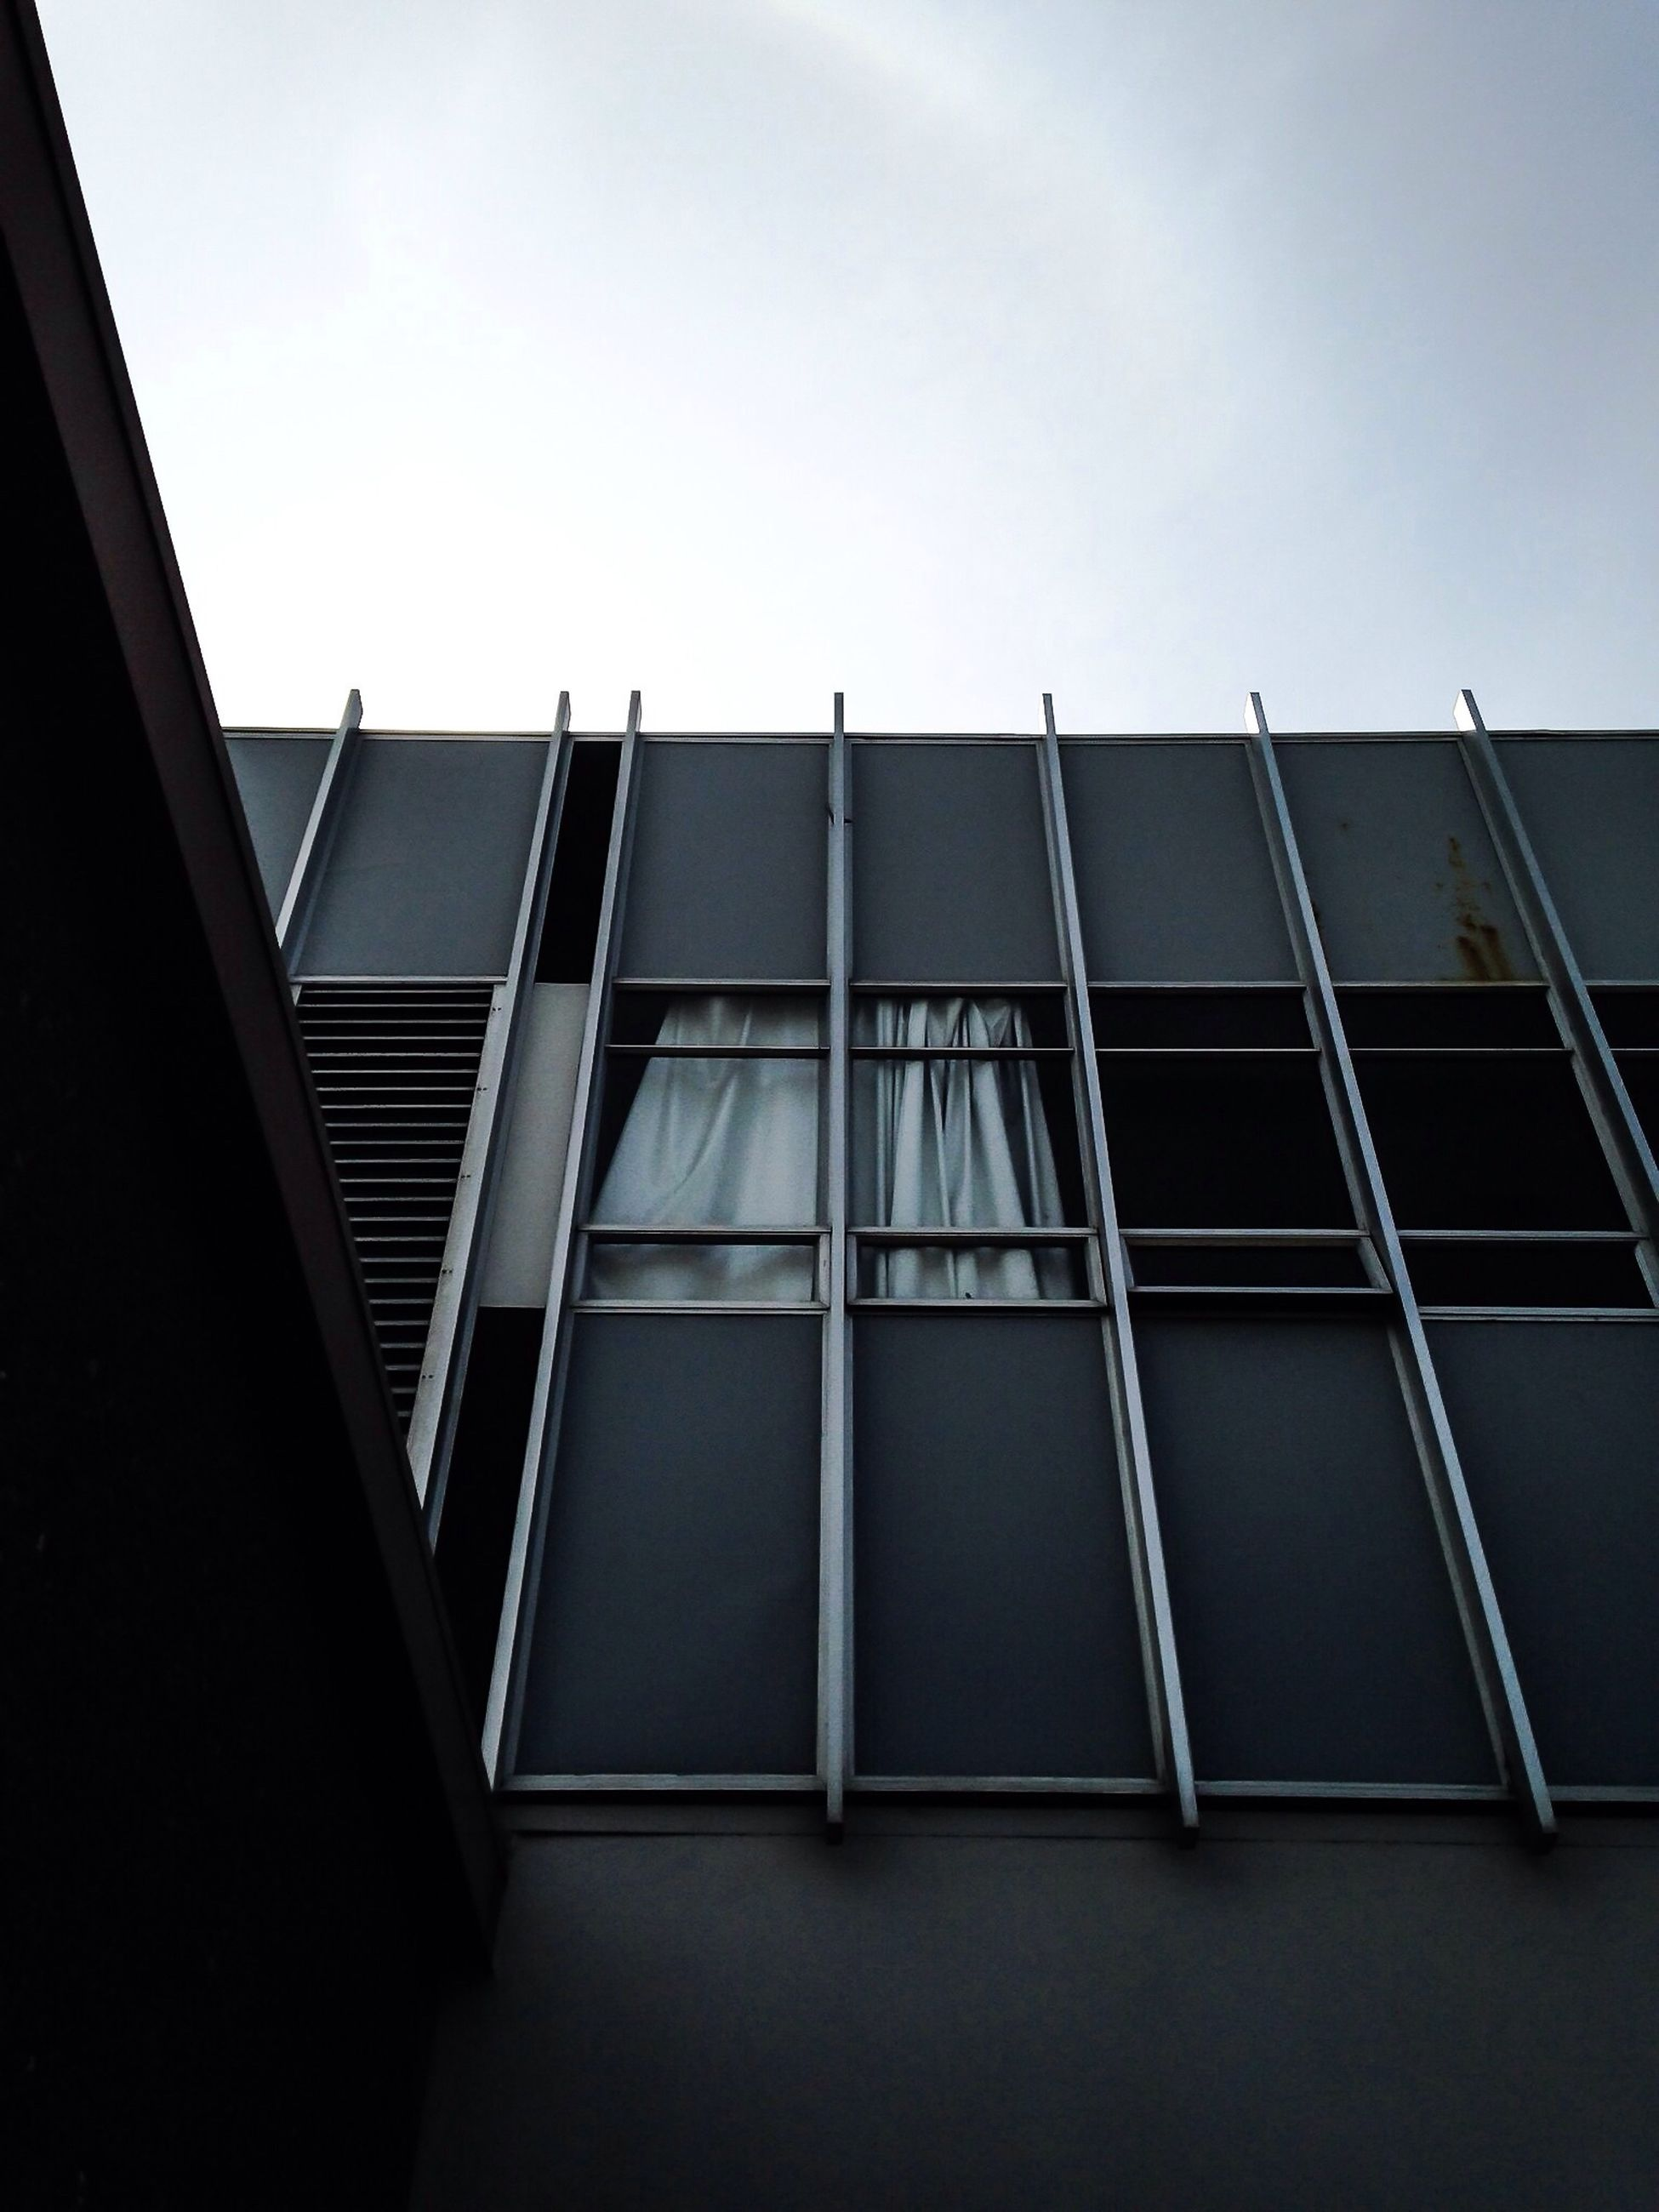 architecture, building exterior, built structure, low angle view, window, building, glass - material, modern, sky, clear sky, office building, city, residential building, residential structure, day, no people, reflection, outdoors, glass, architectural feature